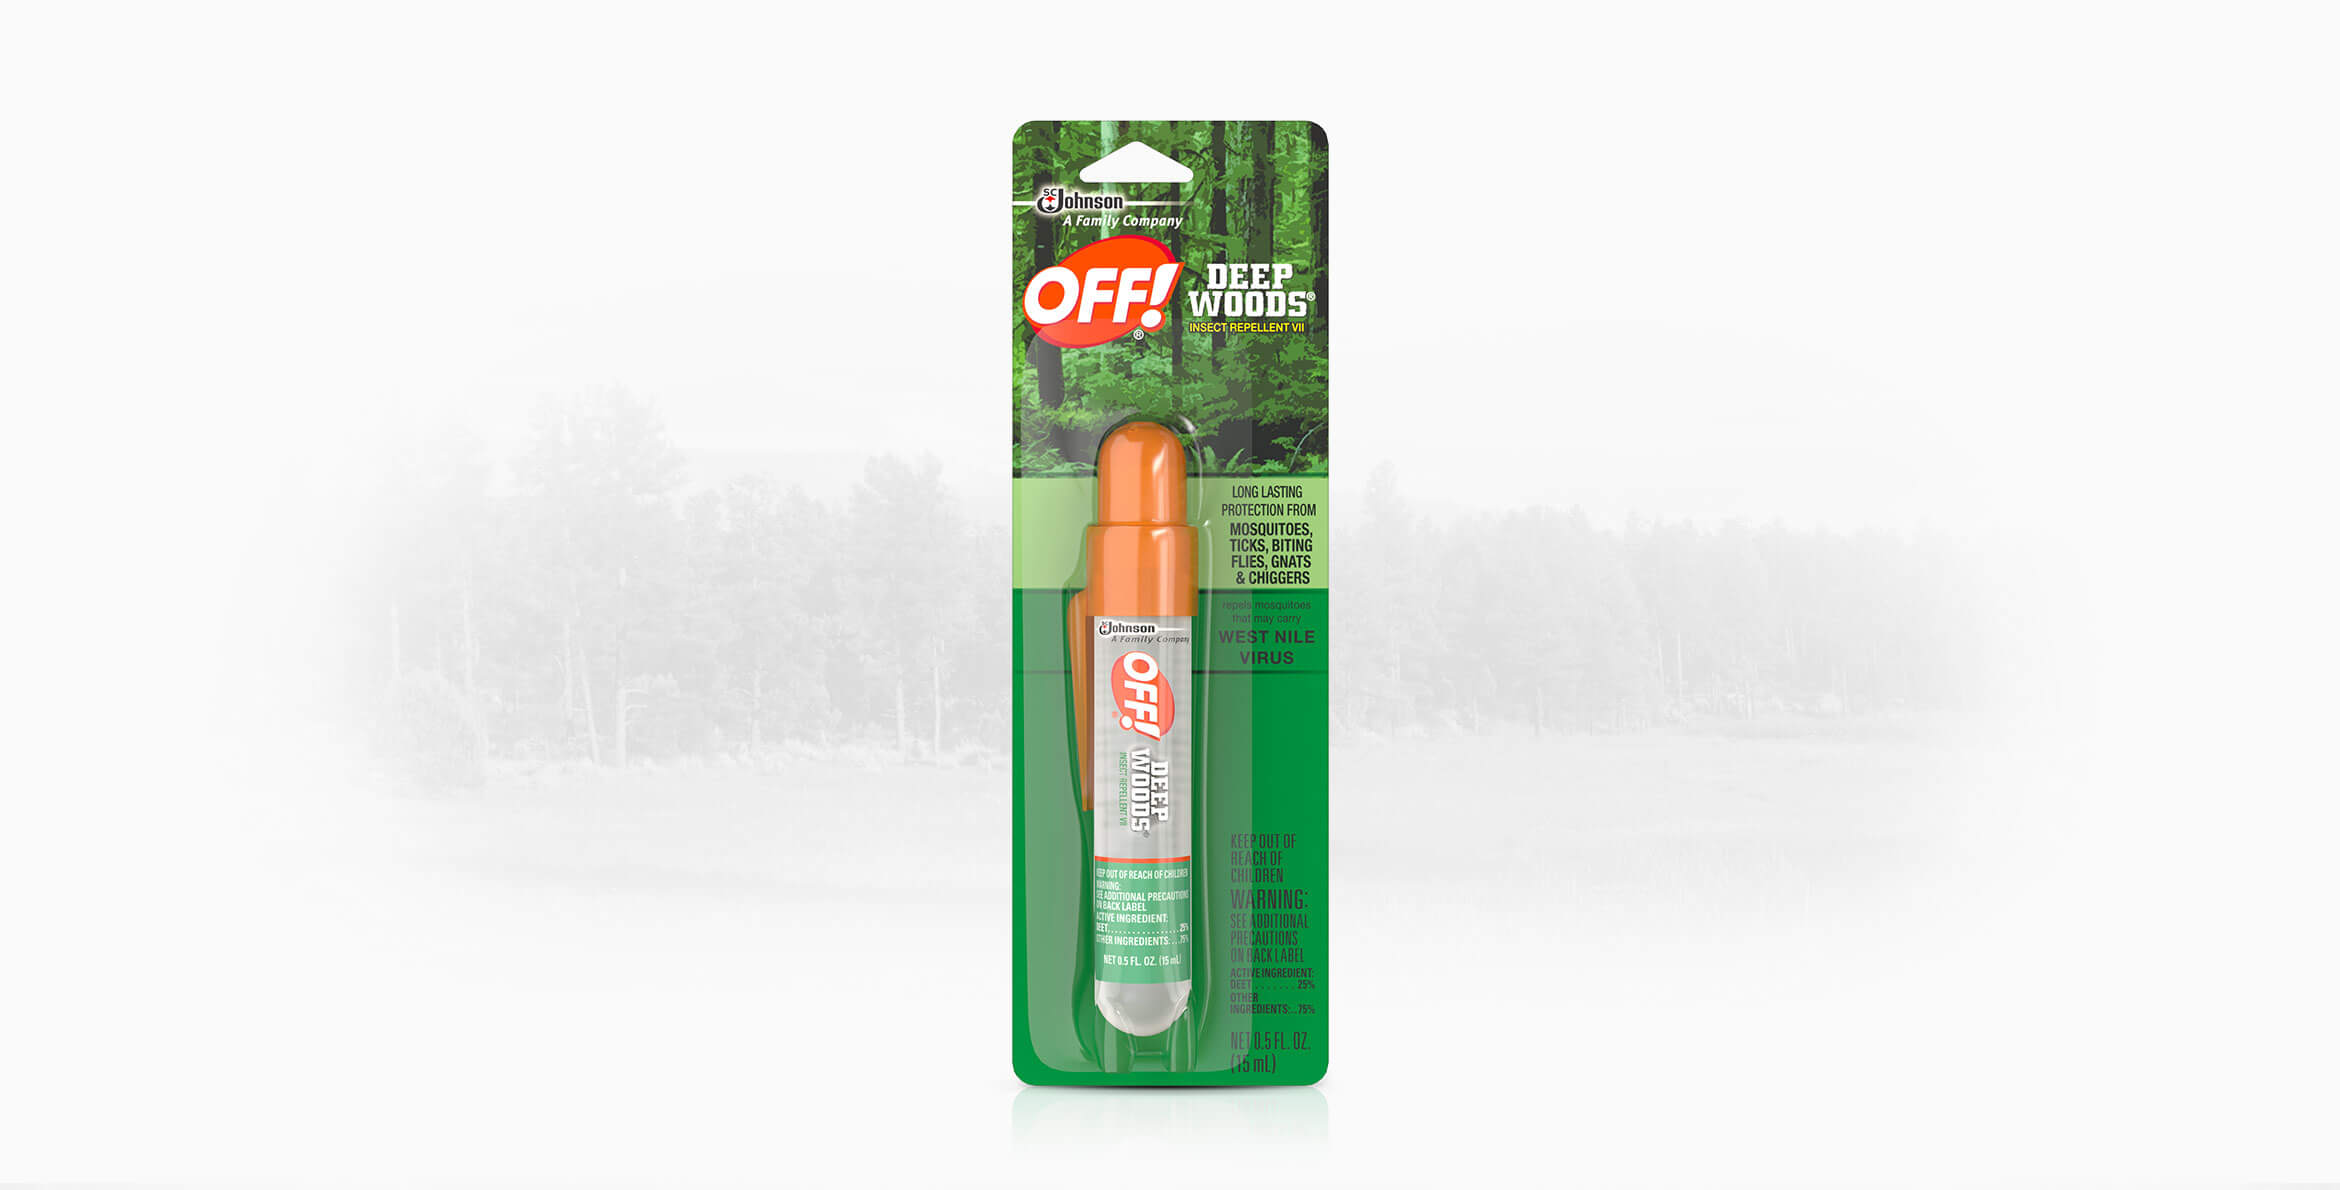 Off Deep Woods 174 Insect Repellent Vii Mini Pump Spray